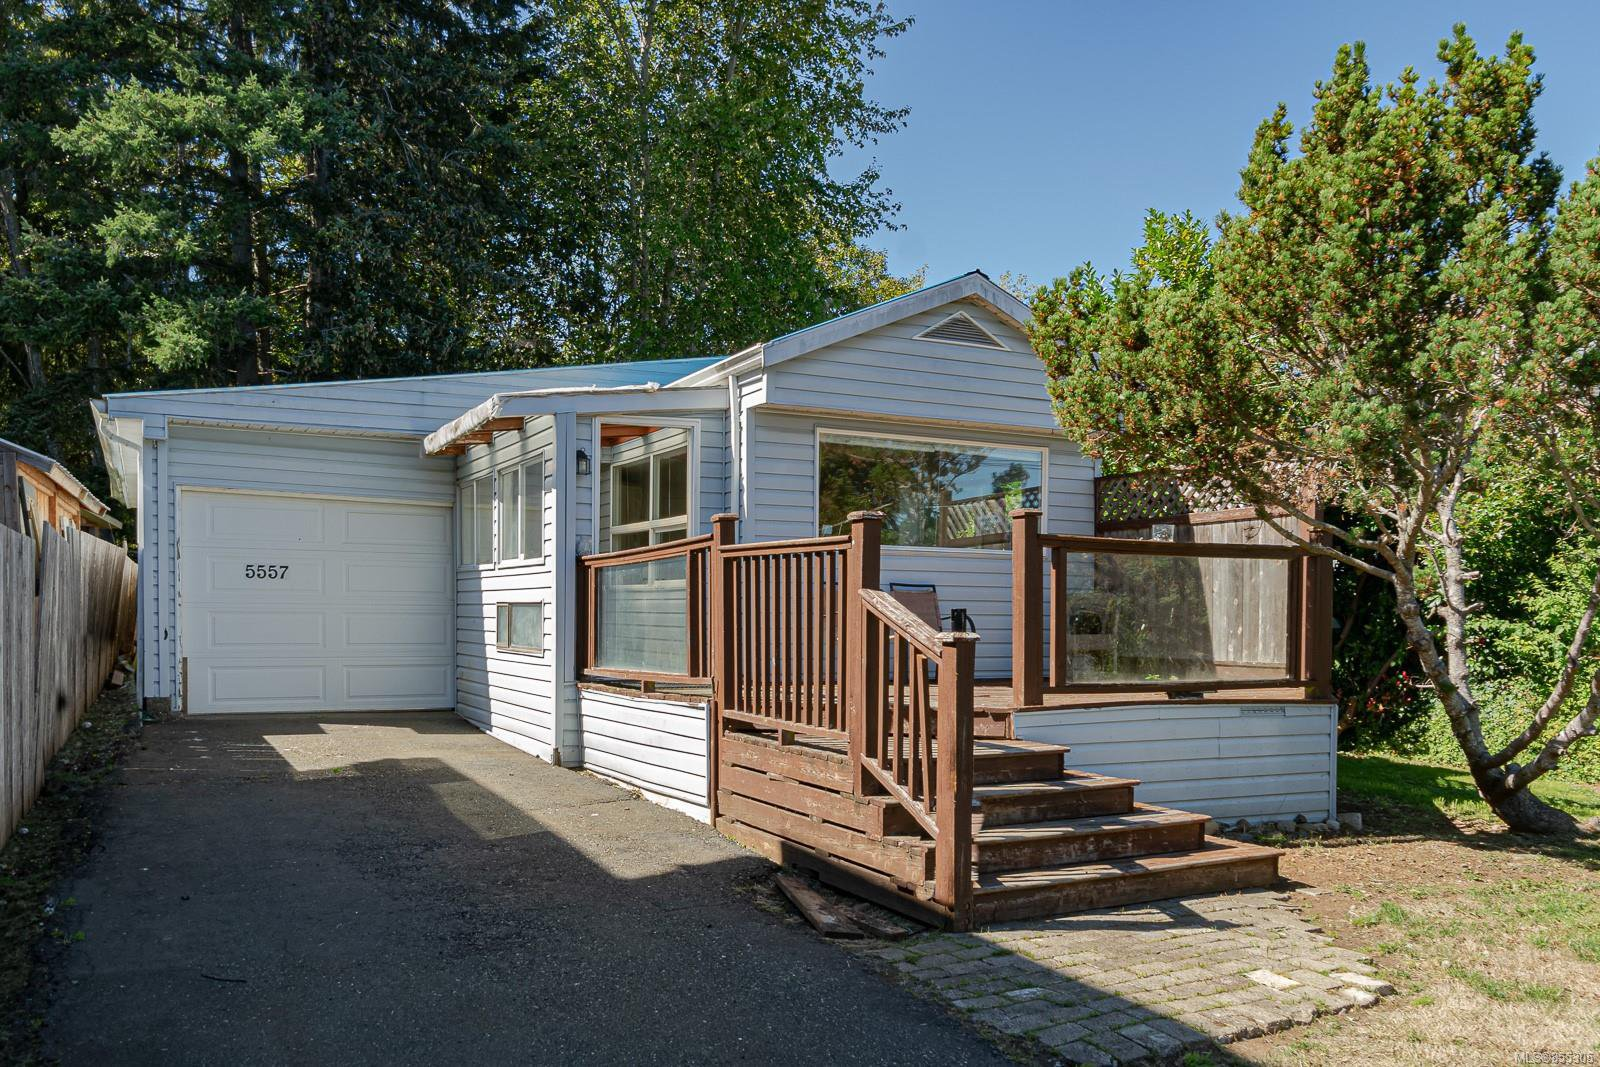 Main Photo: 5557 Horne St in : CV Union Bay/Fanny Bay House for sale (Comox Valley)  : MLS®# 855305